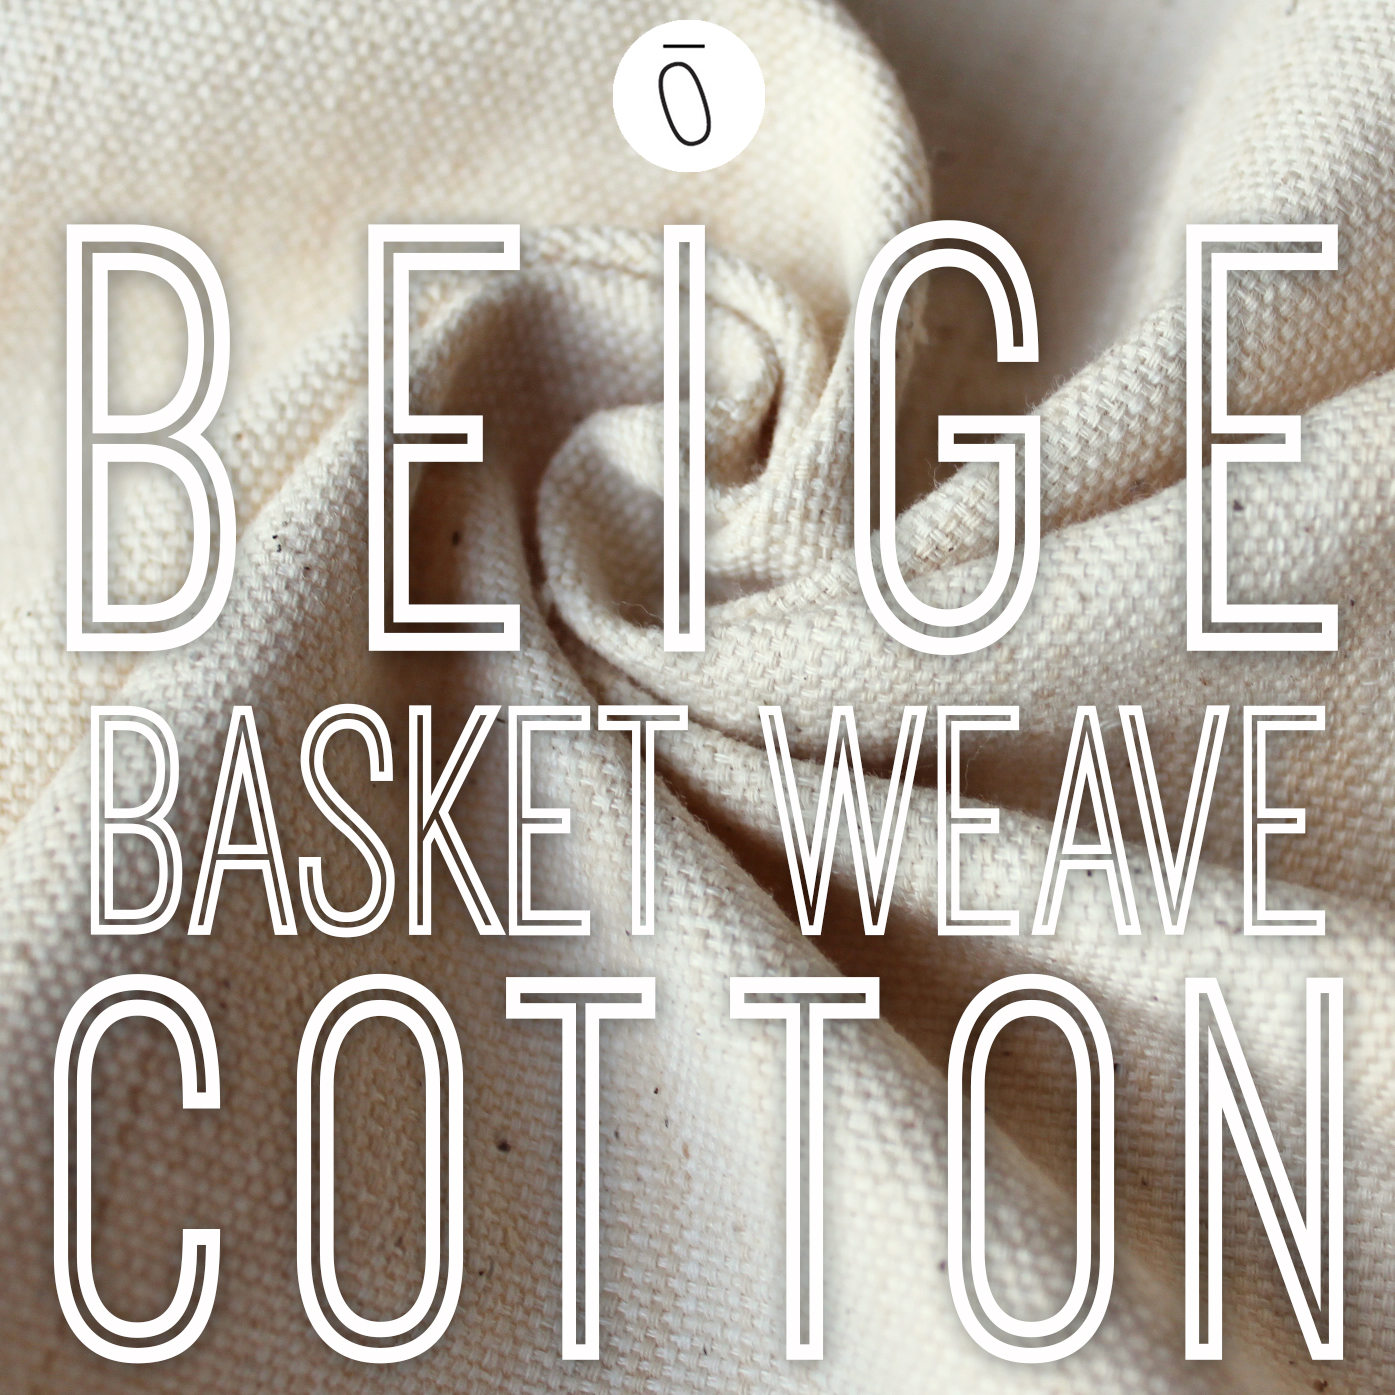 Basket Weaving Name : Beige basket weave cotton fabric of the week